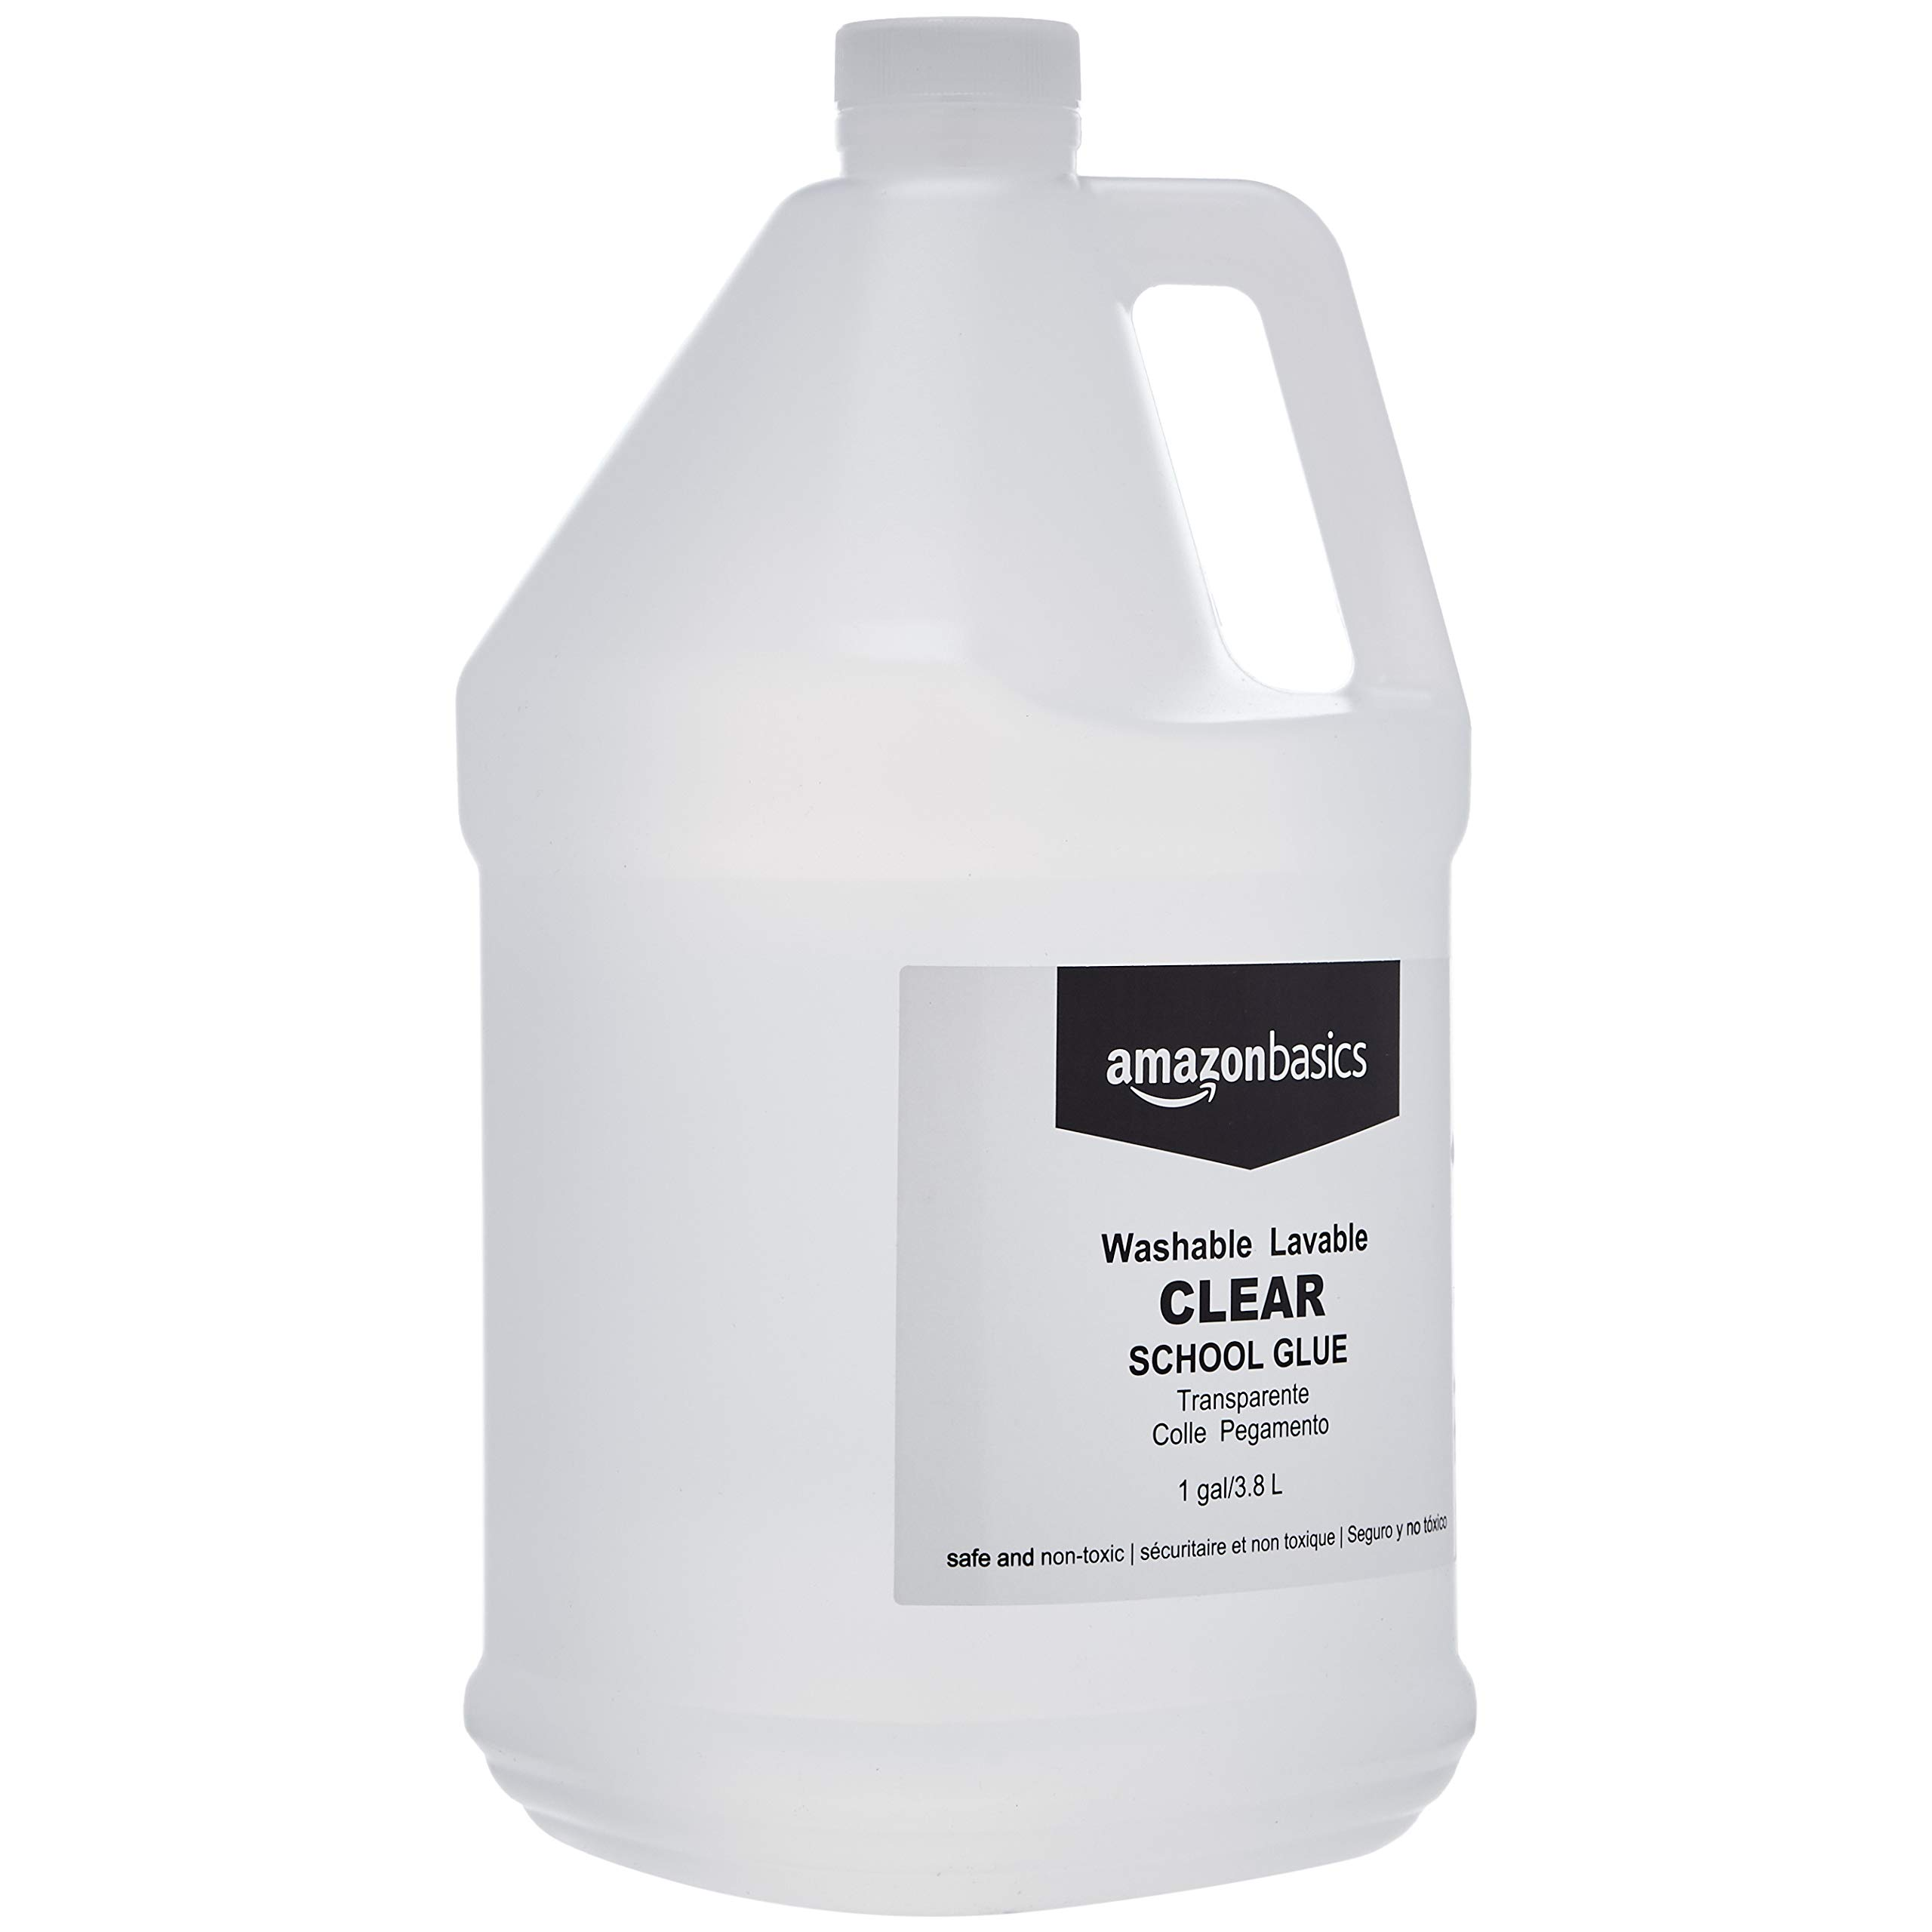 AmazonBasics All Purpose Washable Clear Liquid Glue - Great for Making Slime, 1 Gallon Bottle